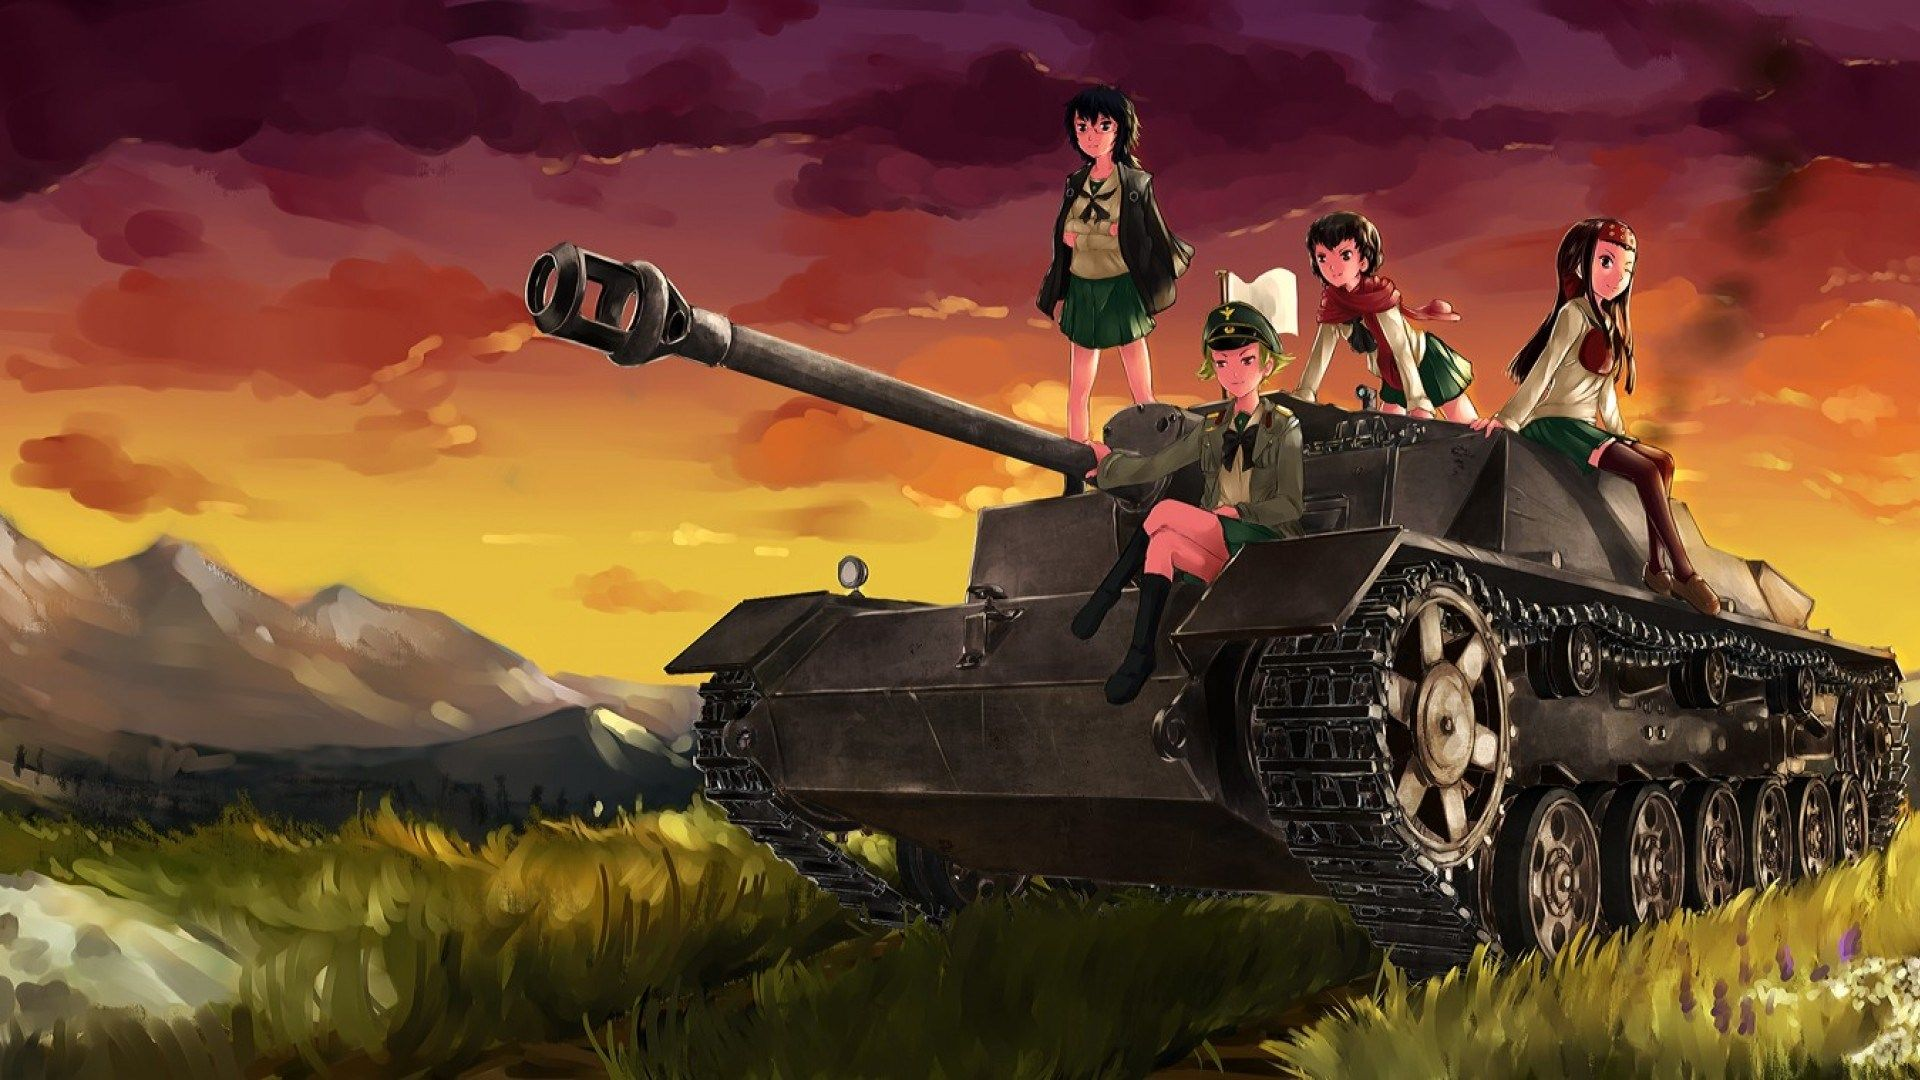 Desktop Wallpaper For Girls Und Panzer Worden Wilkinson 2017 03 23 Tank Wallpaper Background Images Girl Wallpaper